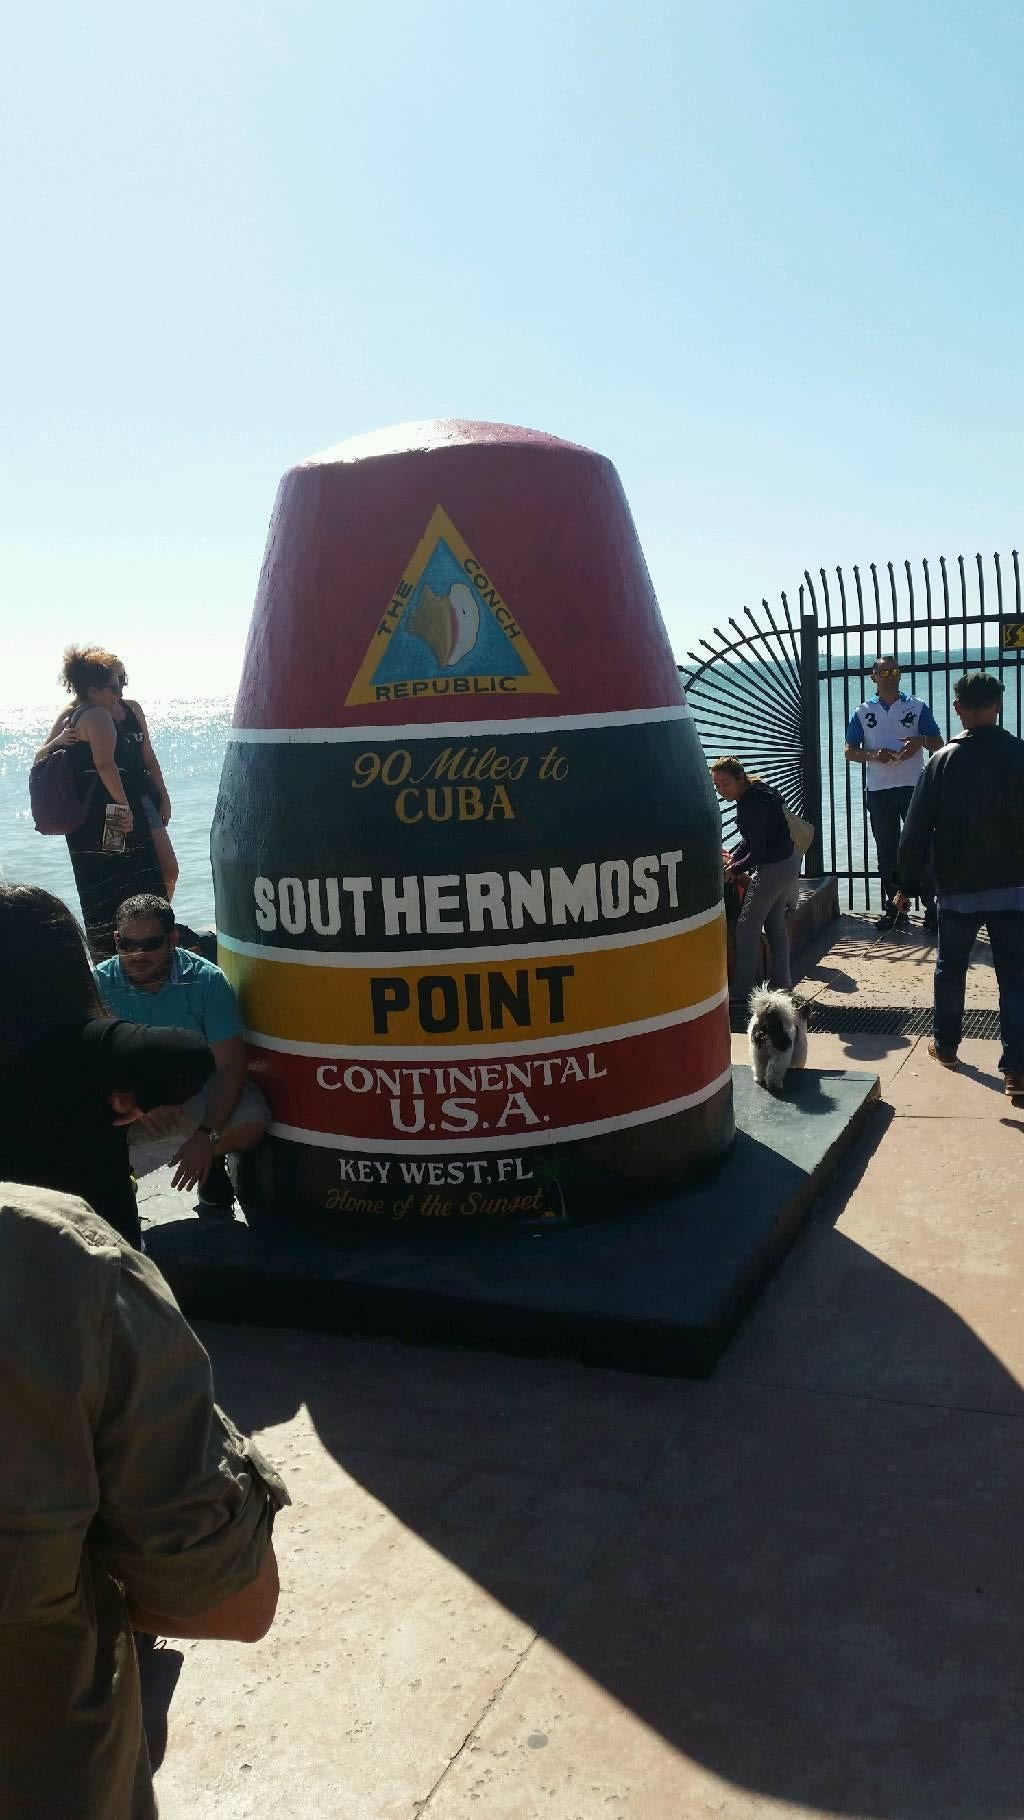 The Southernmost Point of USA